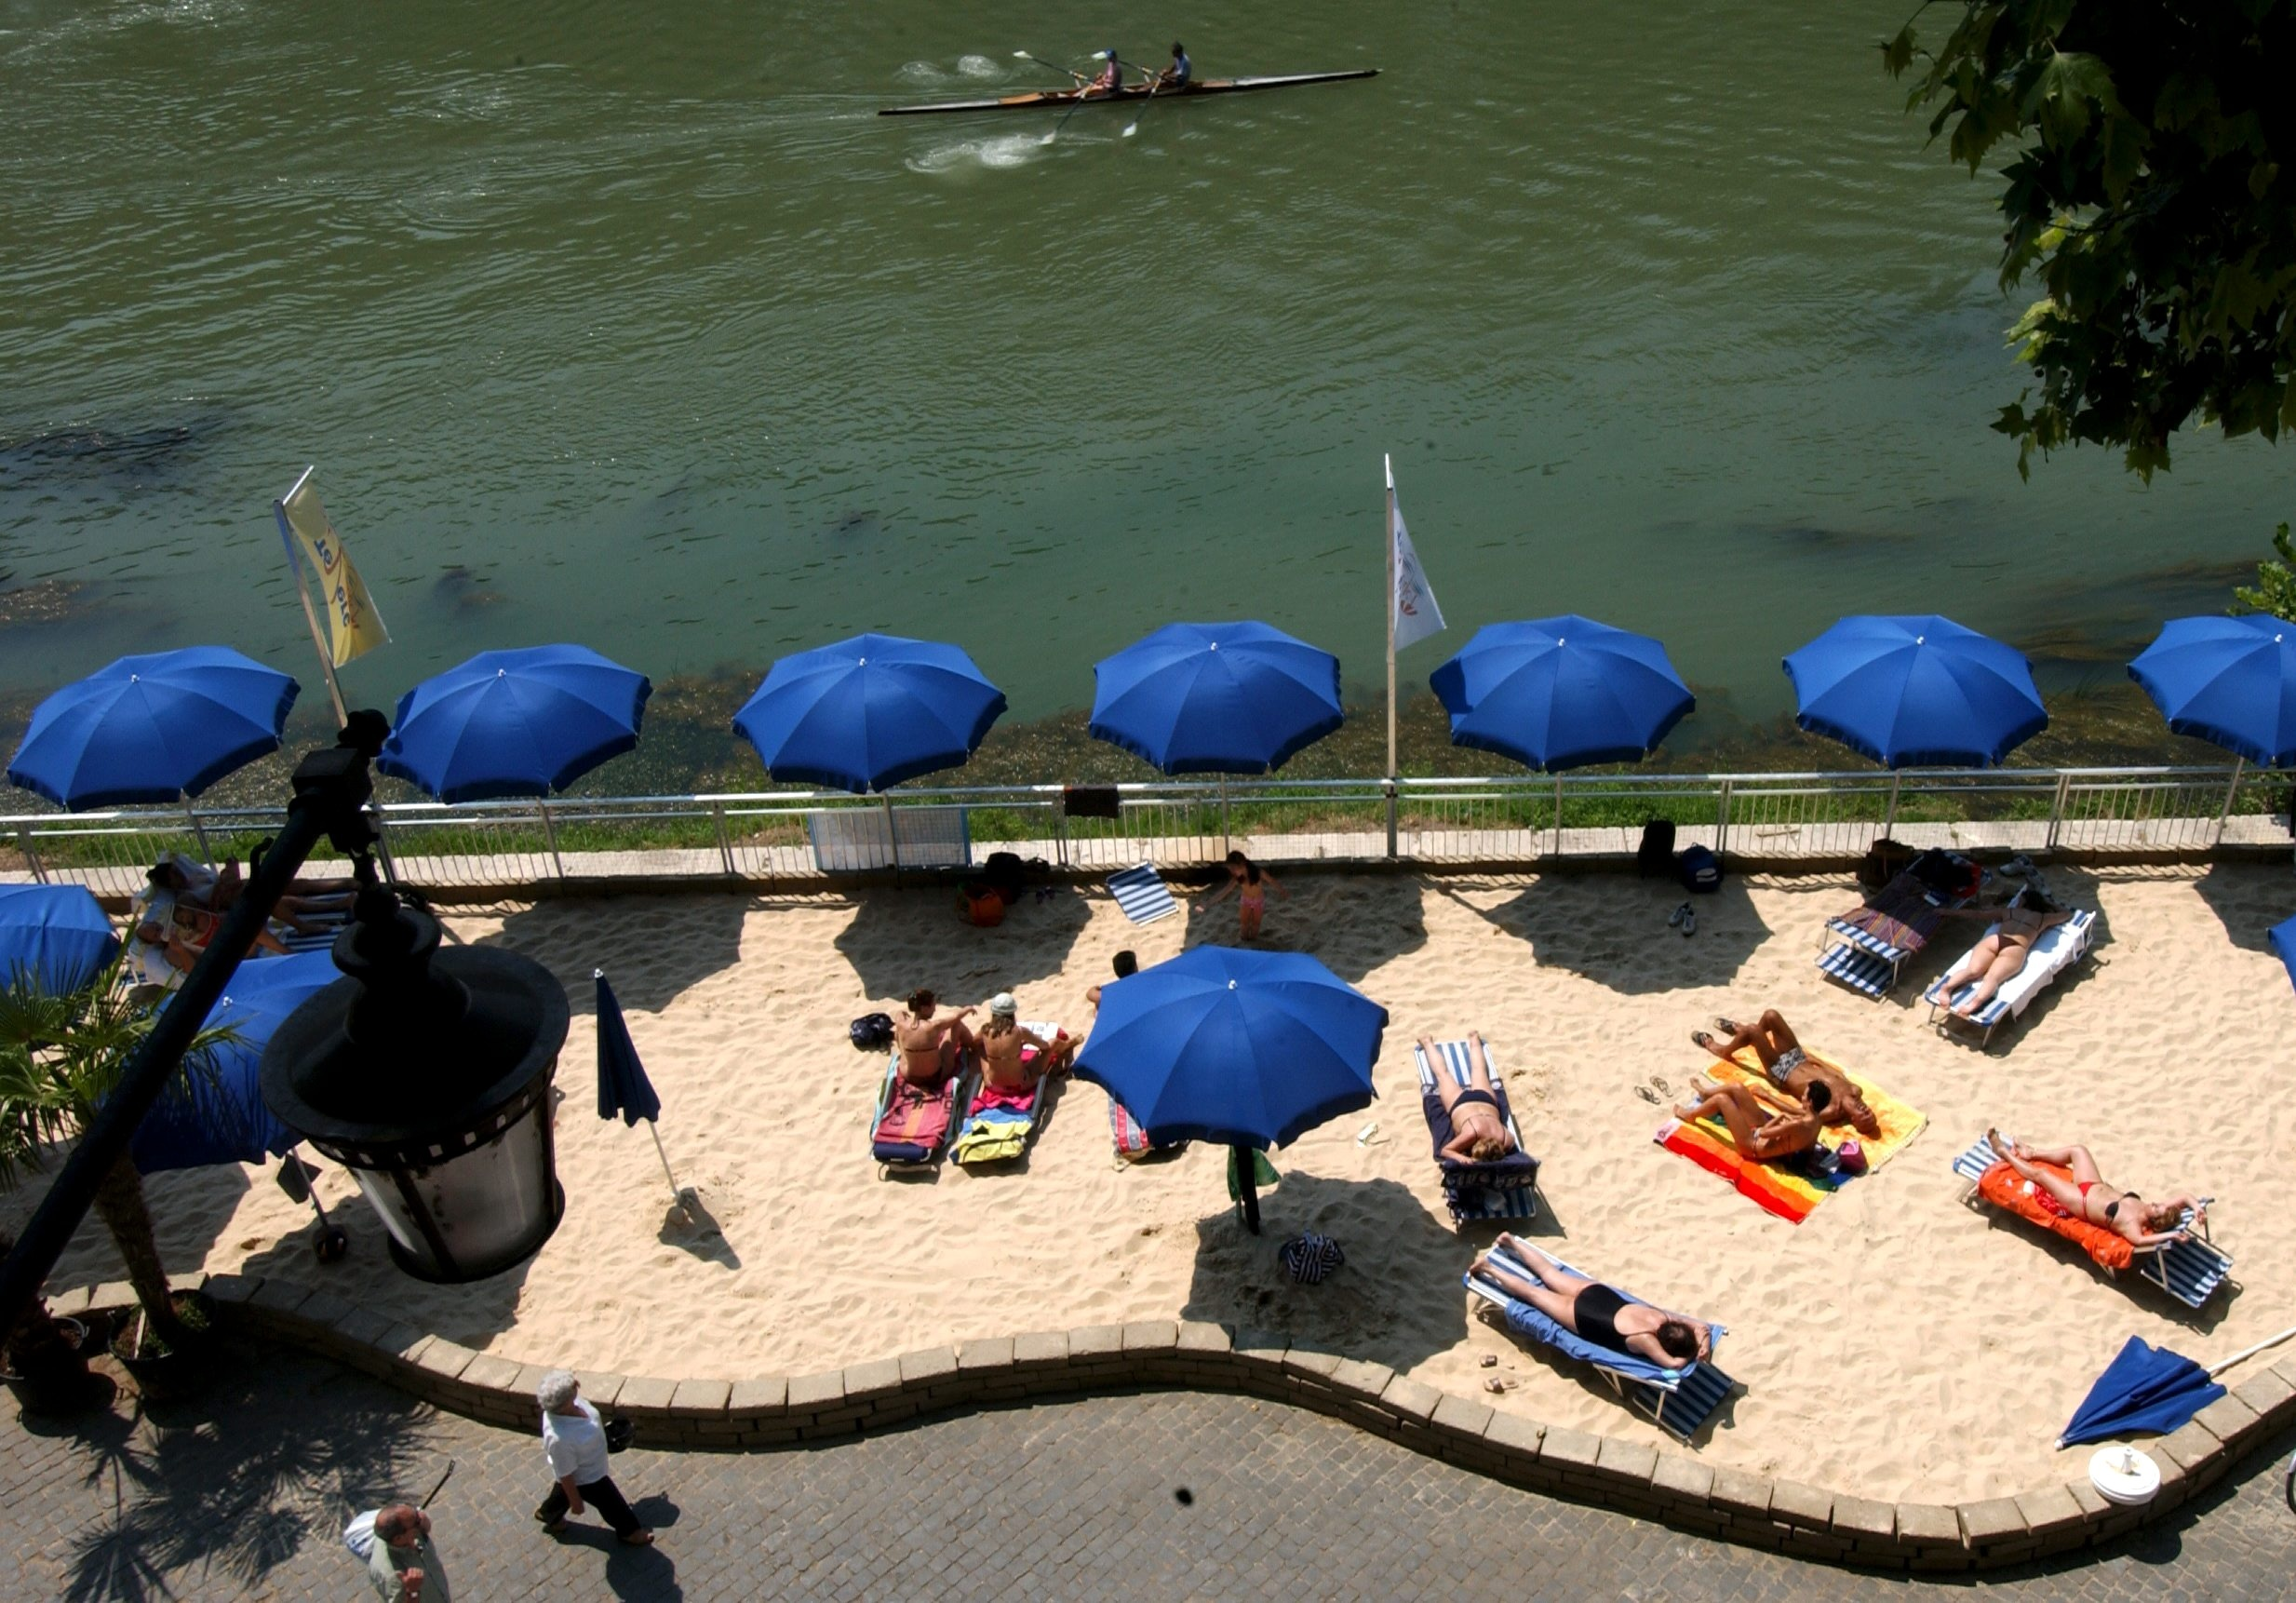 The Tevere Village was set up on both sides of the Tiber River between Ponte Sant'Angelo and Ponte Umberto in 2005.